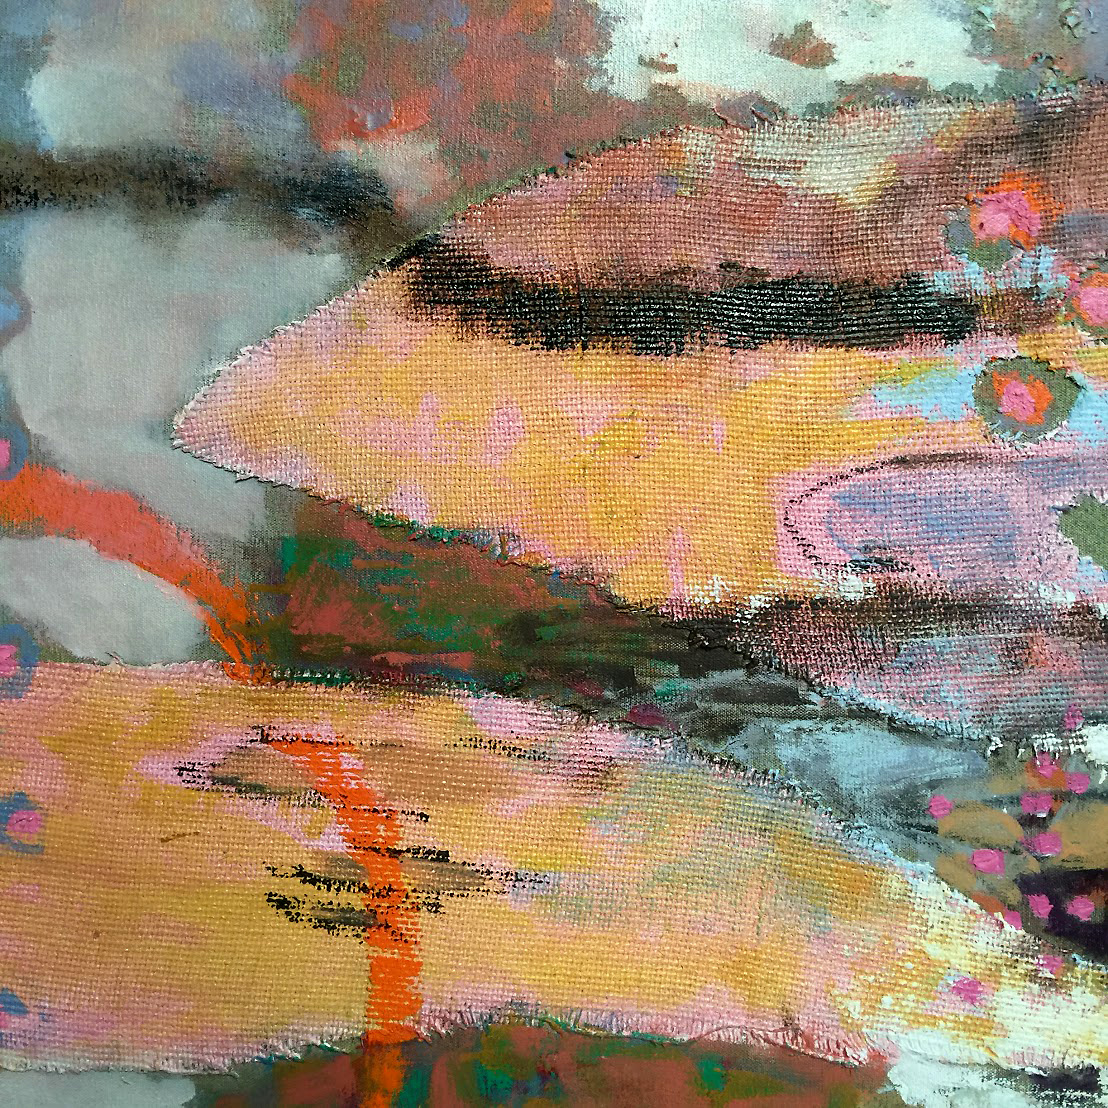 detail of new work in progress at the studio